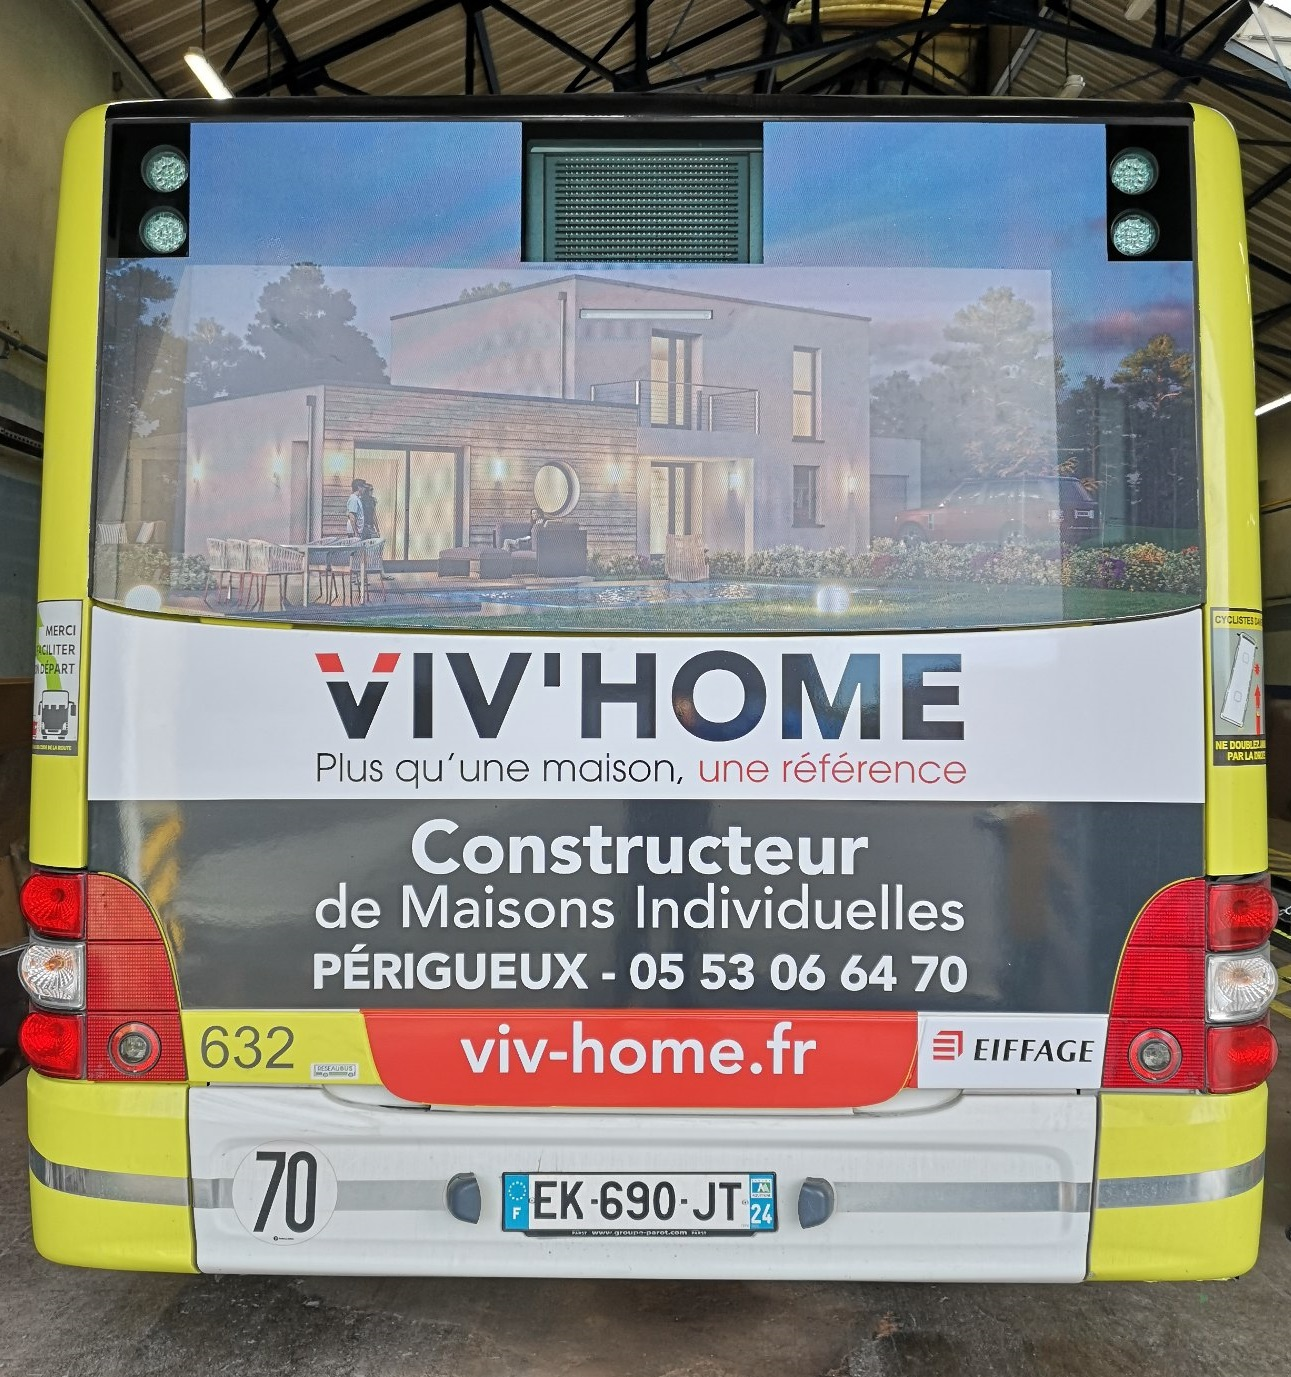 Vivhome Covering perigueux